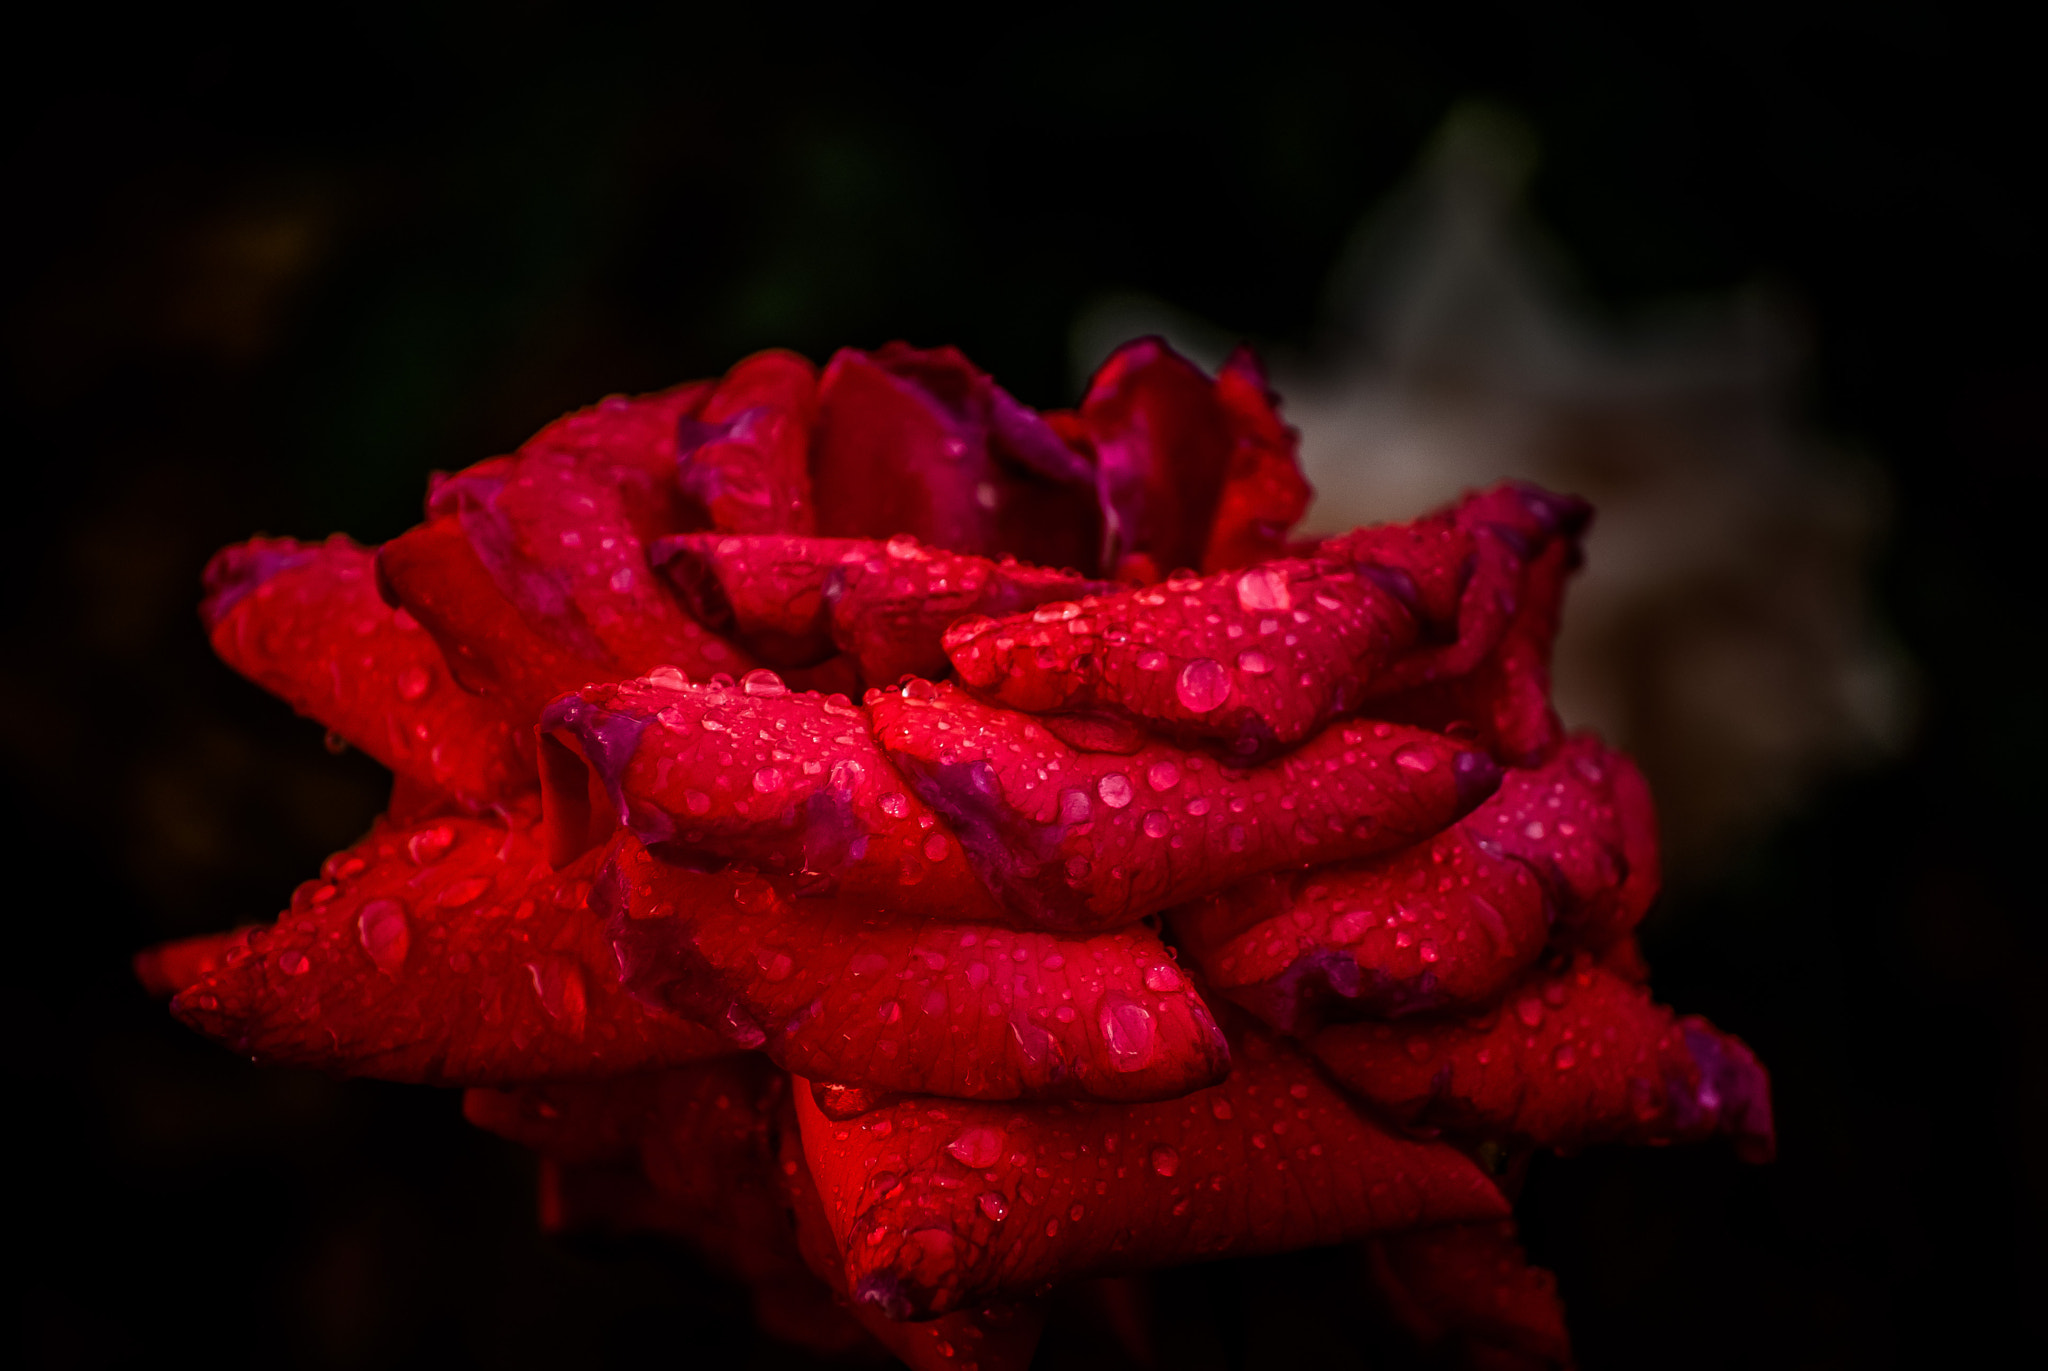 Photograph Rose by Jim Roberts on 500px